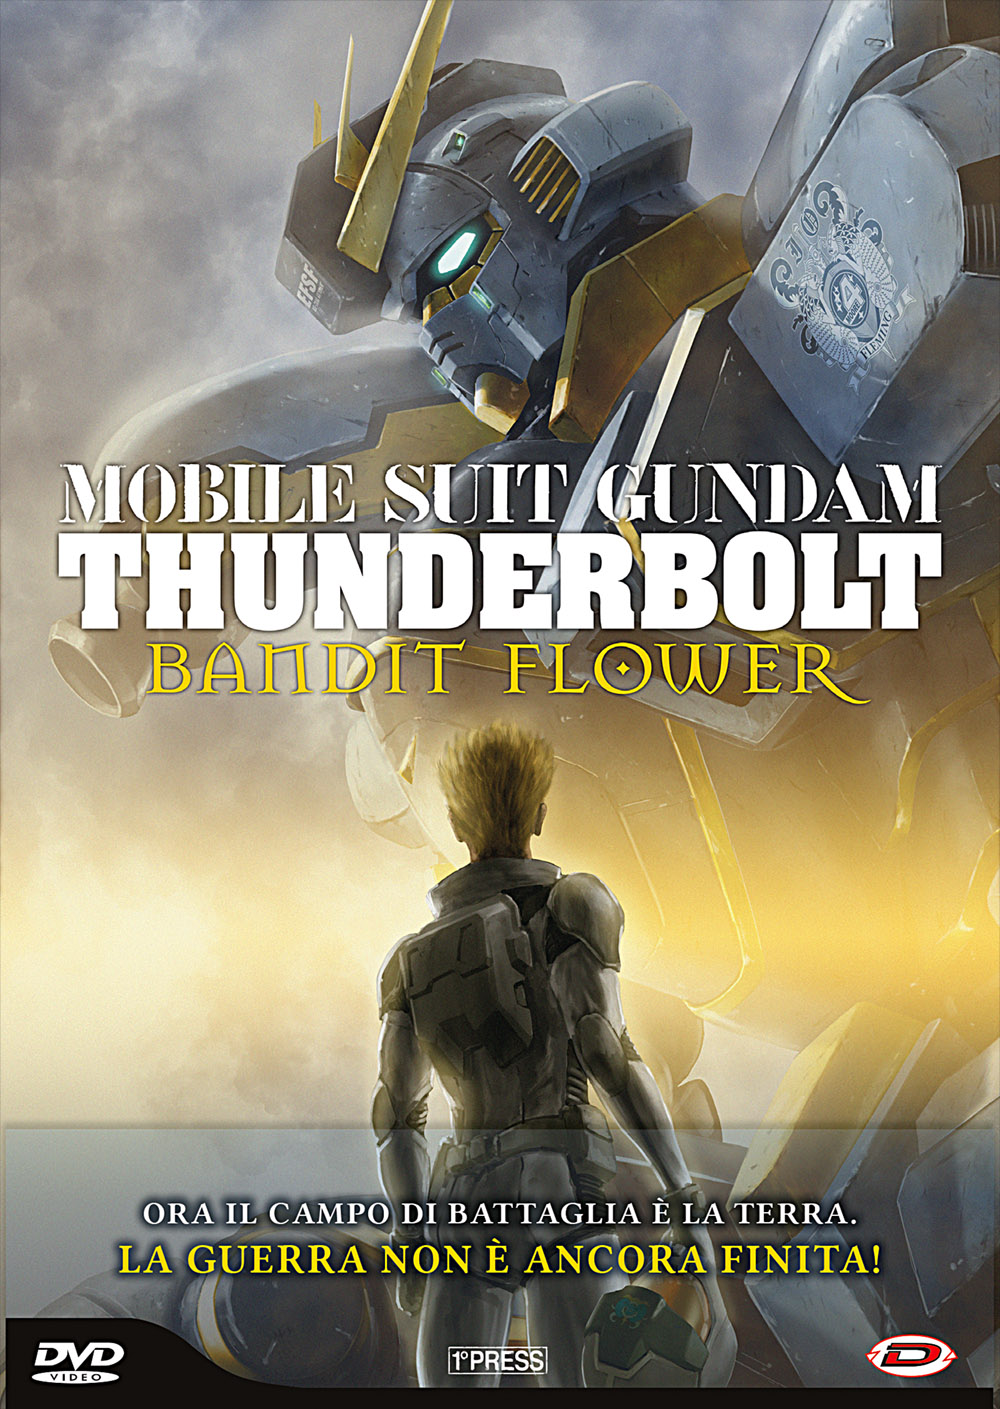 COF. MOBILE SUIT GUNDAM THUNDERBOLT THE MOVIE - BANDIT FLOWER (FIRST PRESS) (DVD)